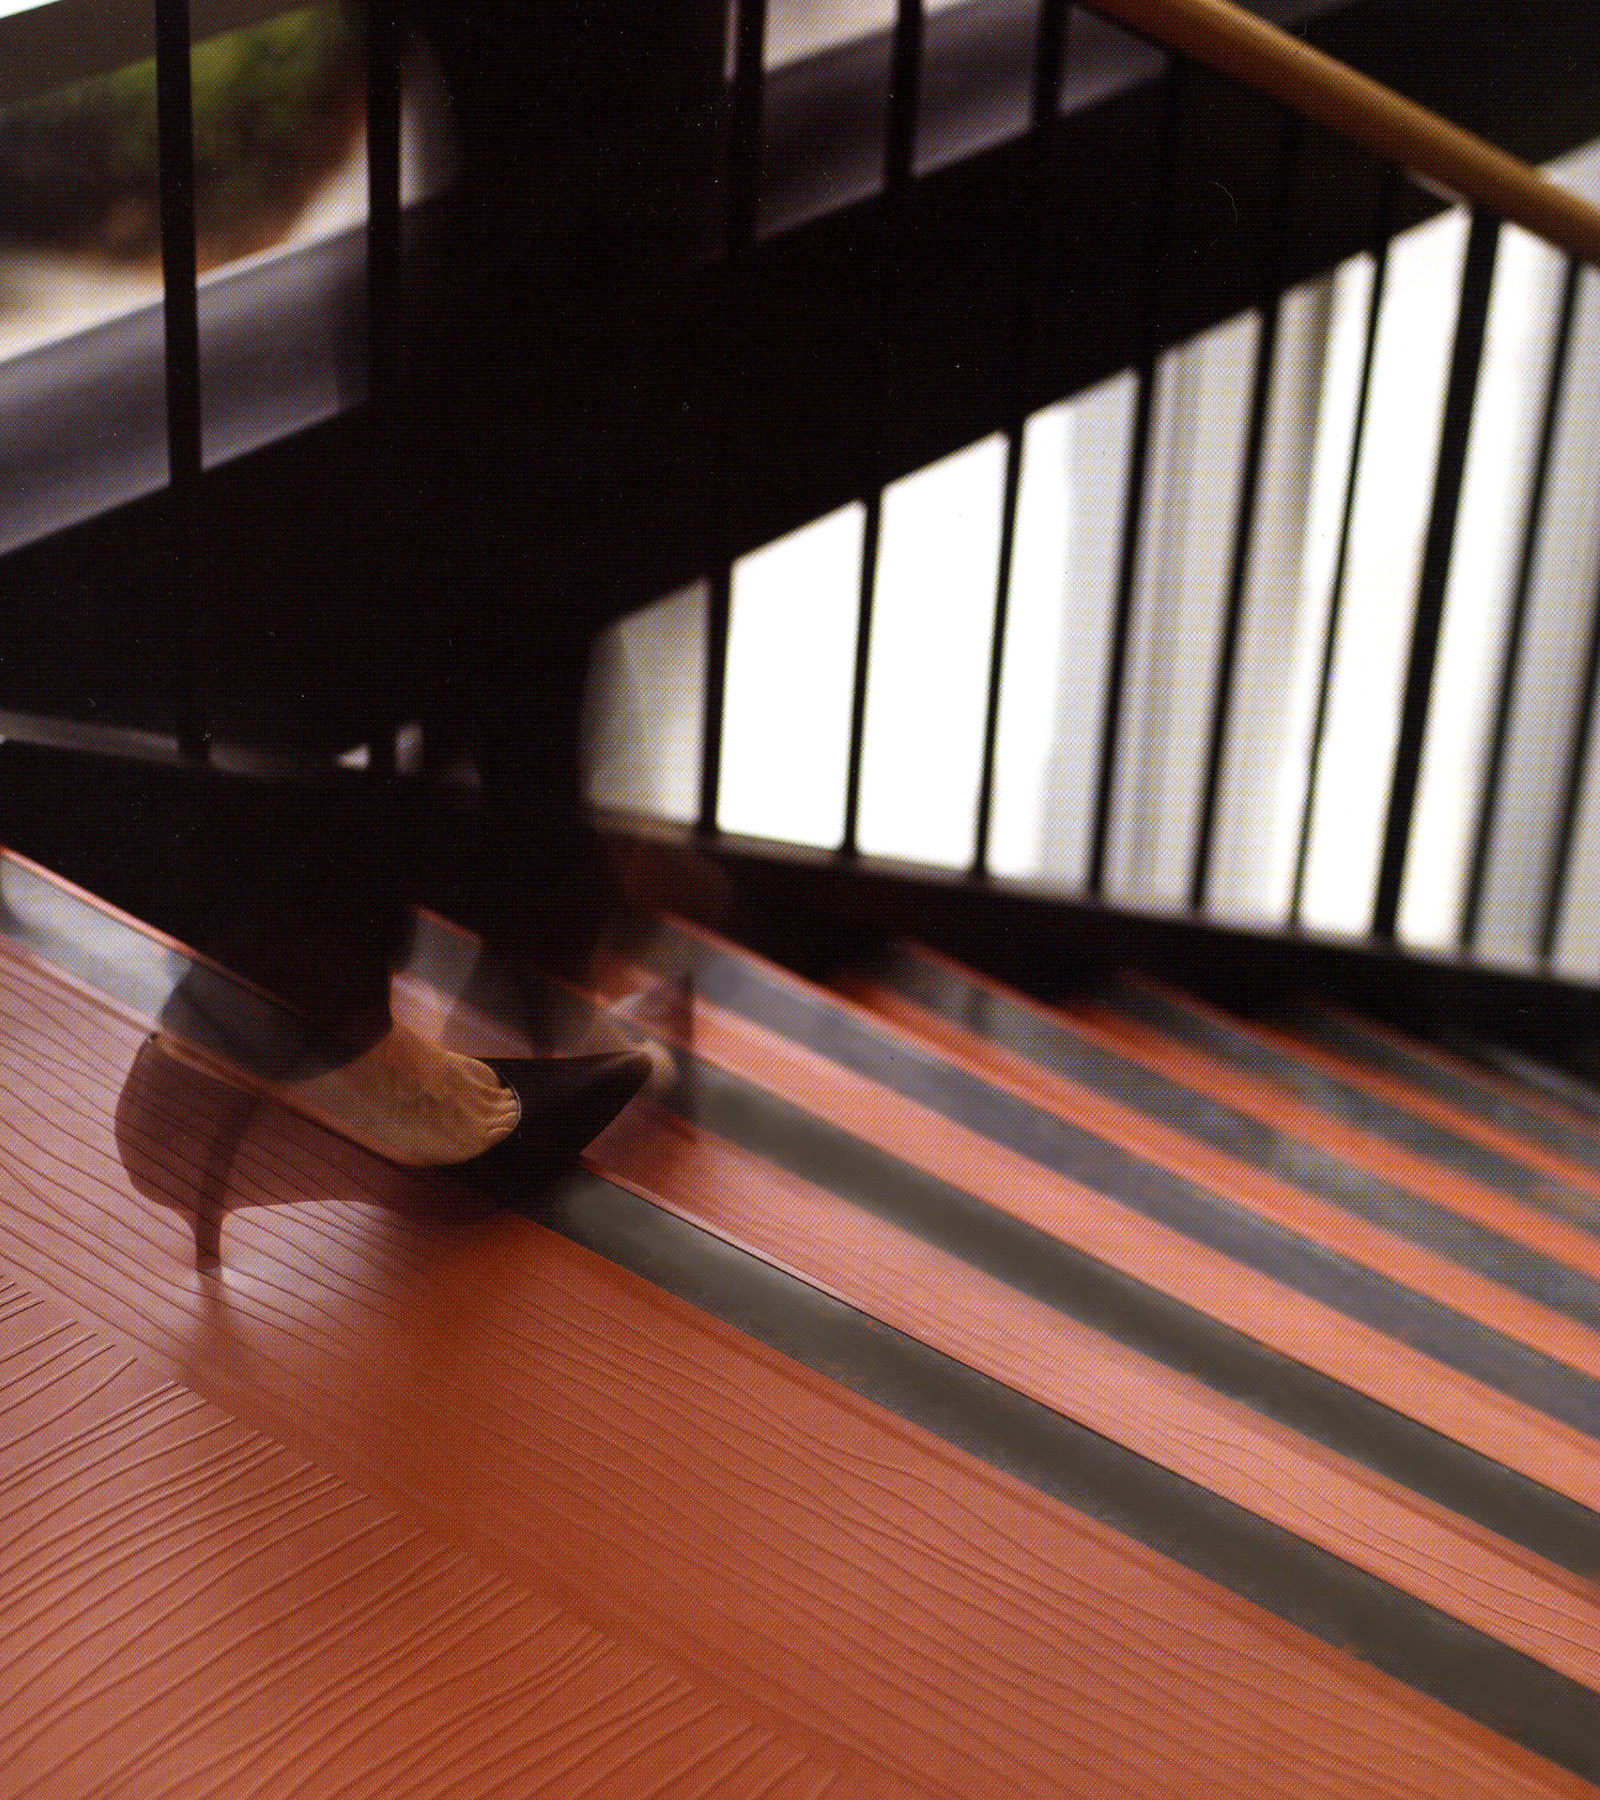 New Anti Slip Grit Tape For Safer Vinyl And Rubber Stair Treads From  Martinson Nicholls